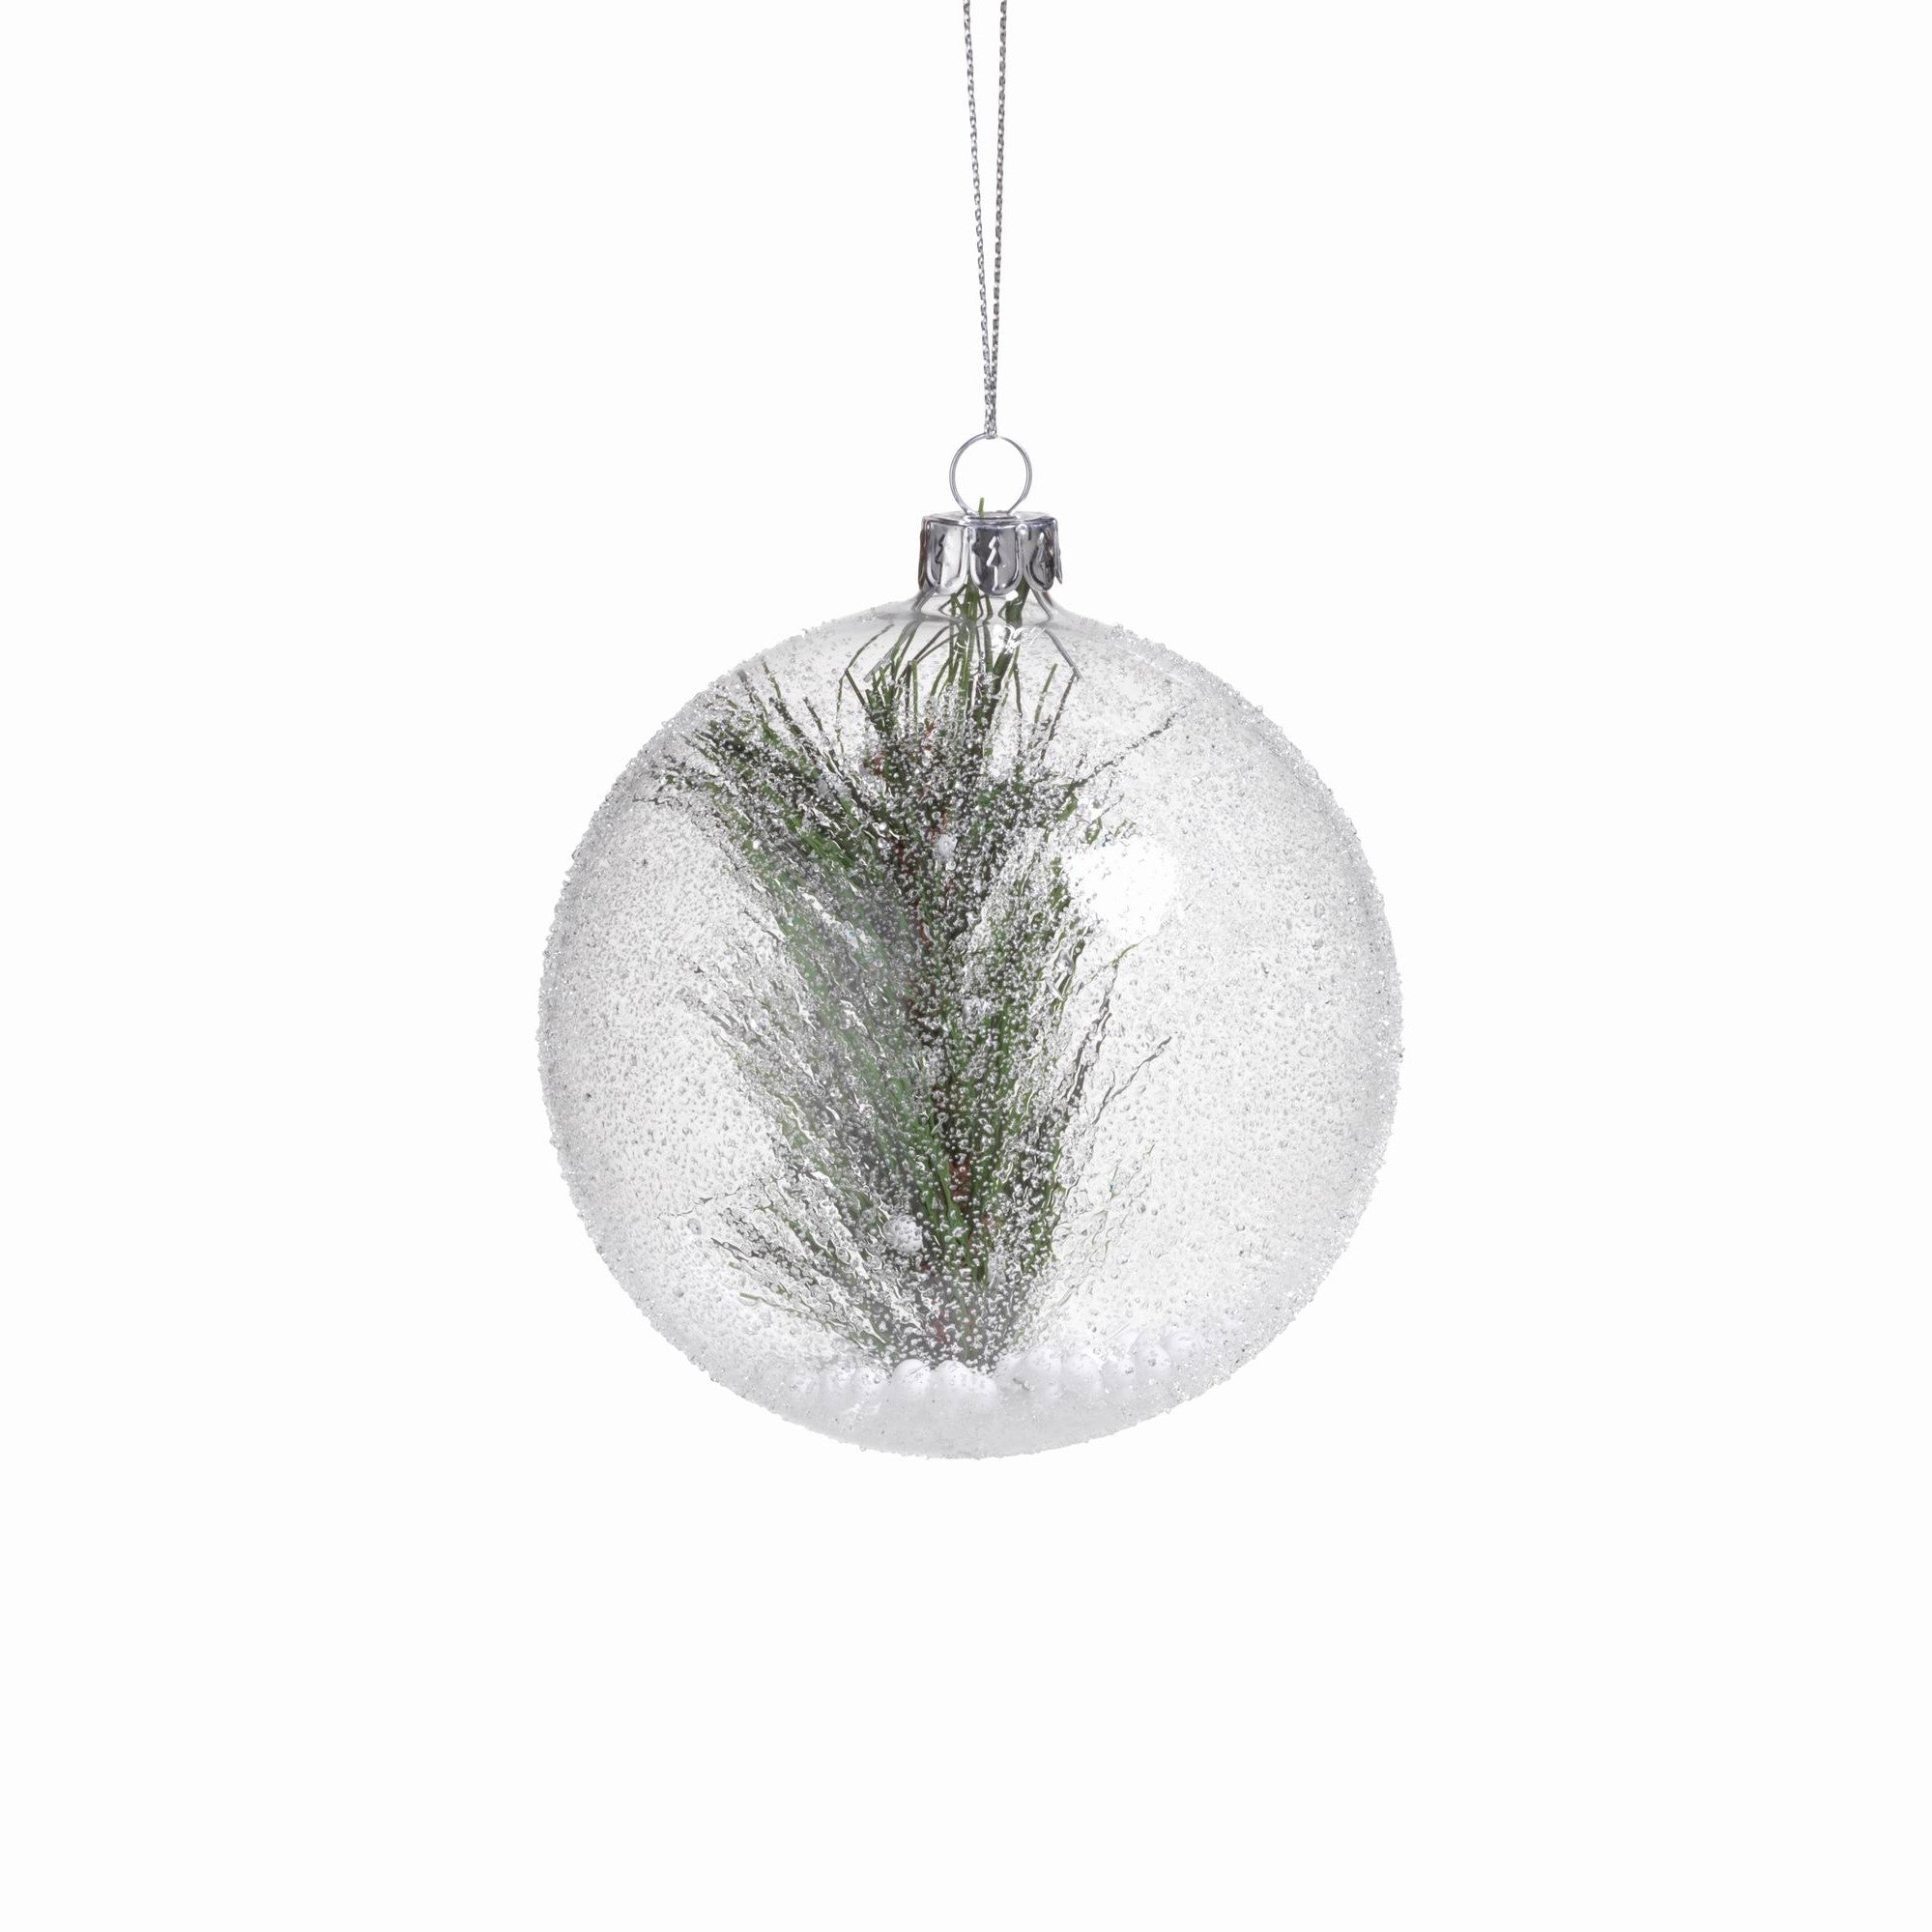 Clear Beaded Round Ornament w/ Pine Needle - CARLYLE AVENUE